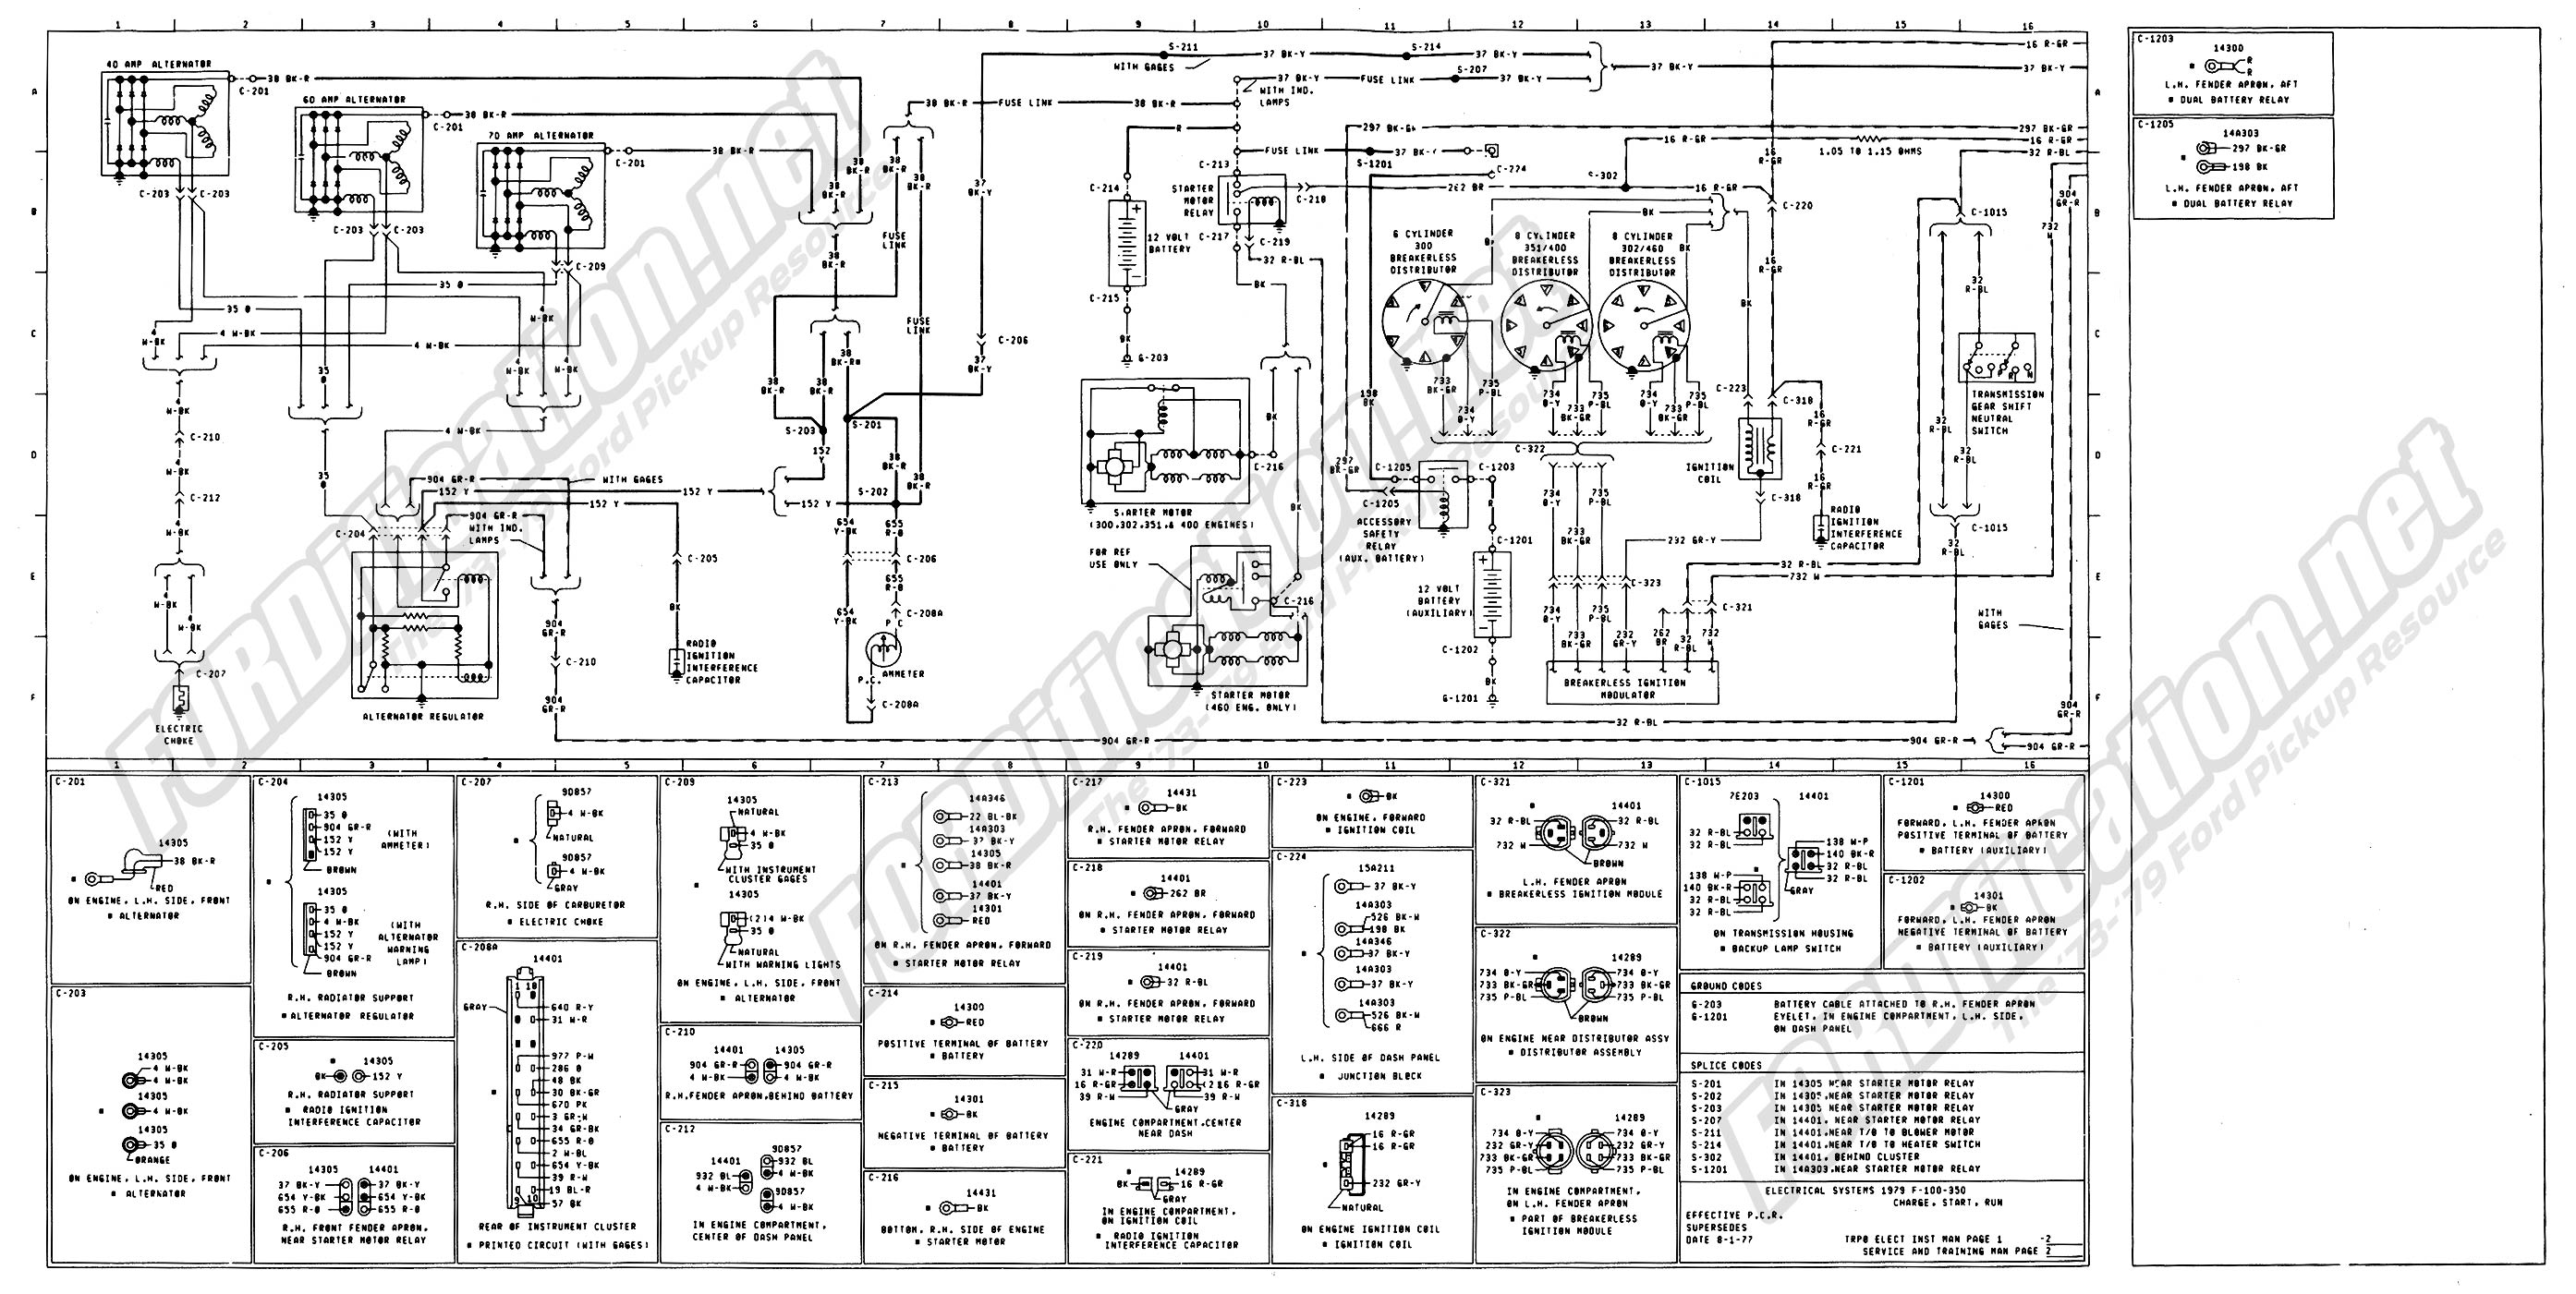 wiring_79master_2of9 1973 1979 ford truck wiring diagrams & schematics fordification net 1995 ford f150 xlt wiring diagram at n-0.co